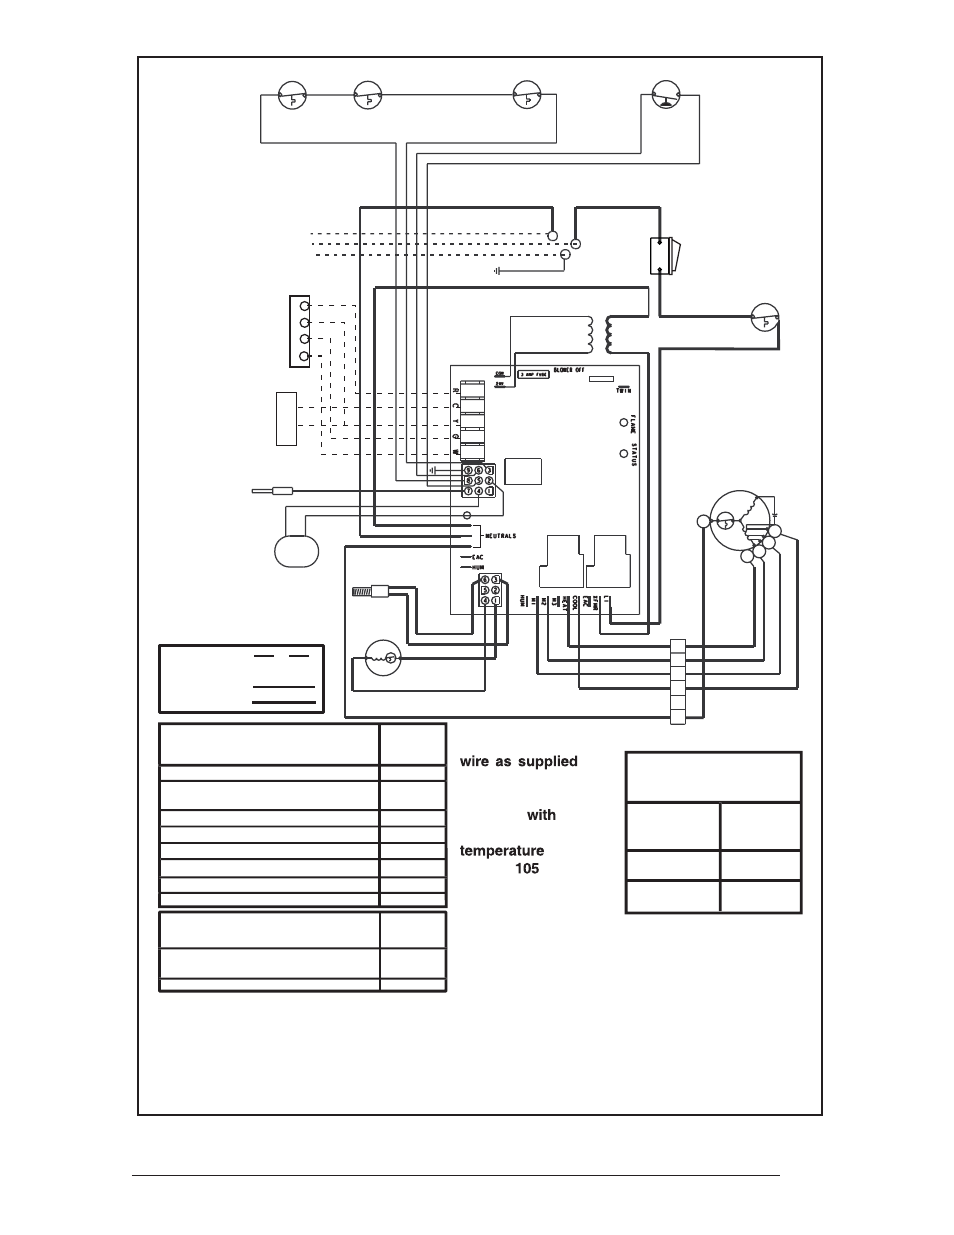 [DIAGRAM_4FR]  Diagram Com Wire Nordynue -2004 F650 Fuse Box Diagram | Begeboy Wiring  Diagram Source | Nordyne Wiring Diagram |  | Begeboy Wiring Diagram Source